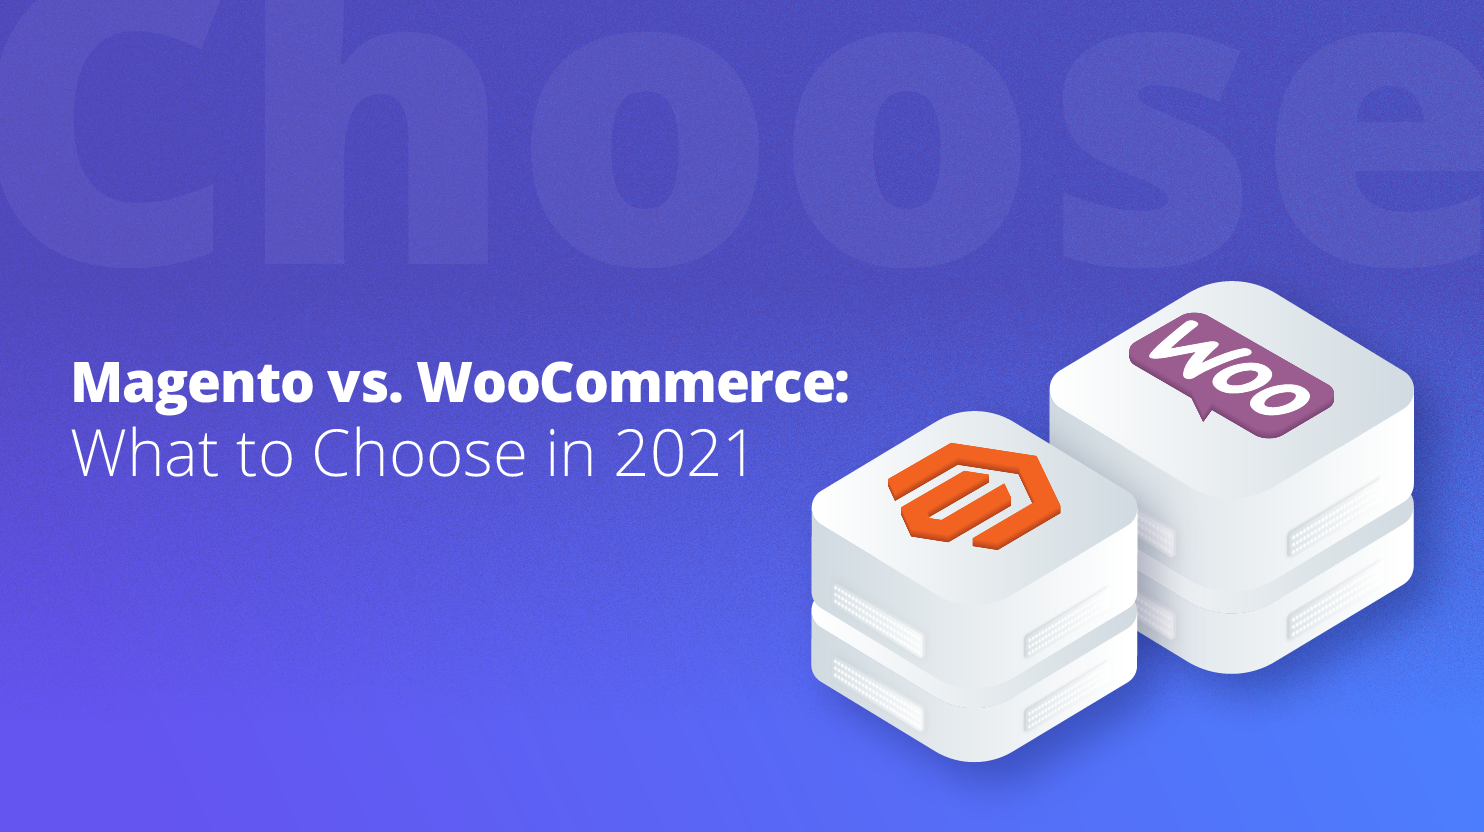 two servers, with a woocommerce and magento logo respectively